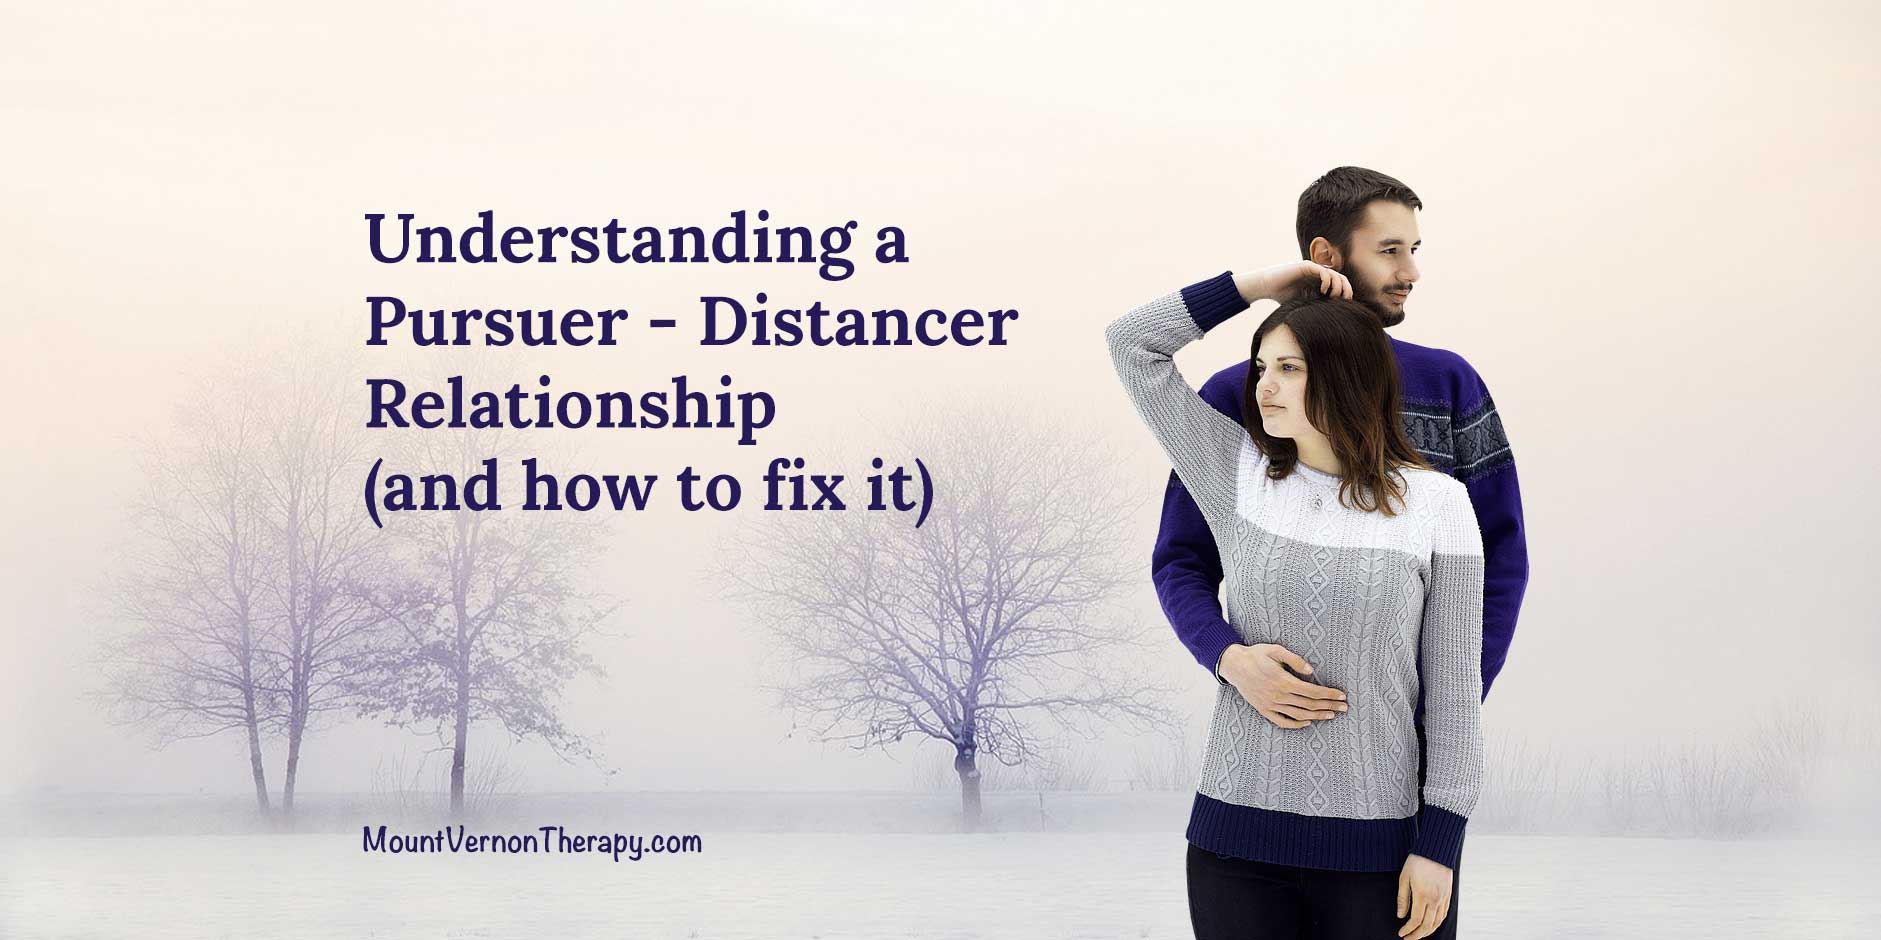 How to Understand a Pursuer – Distancer Relationship